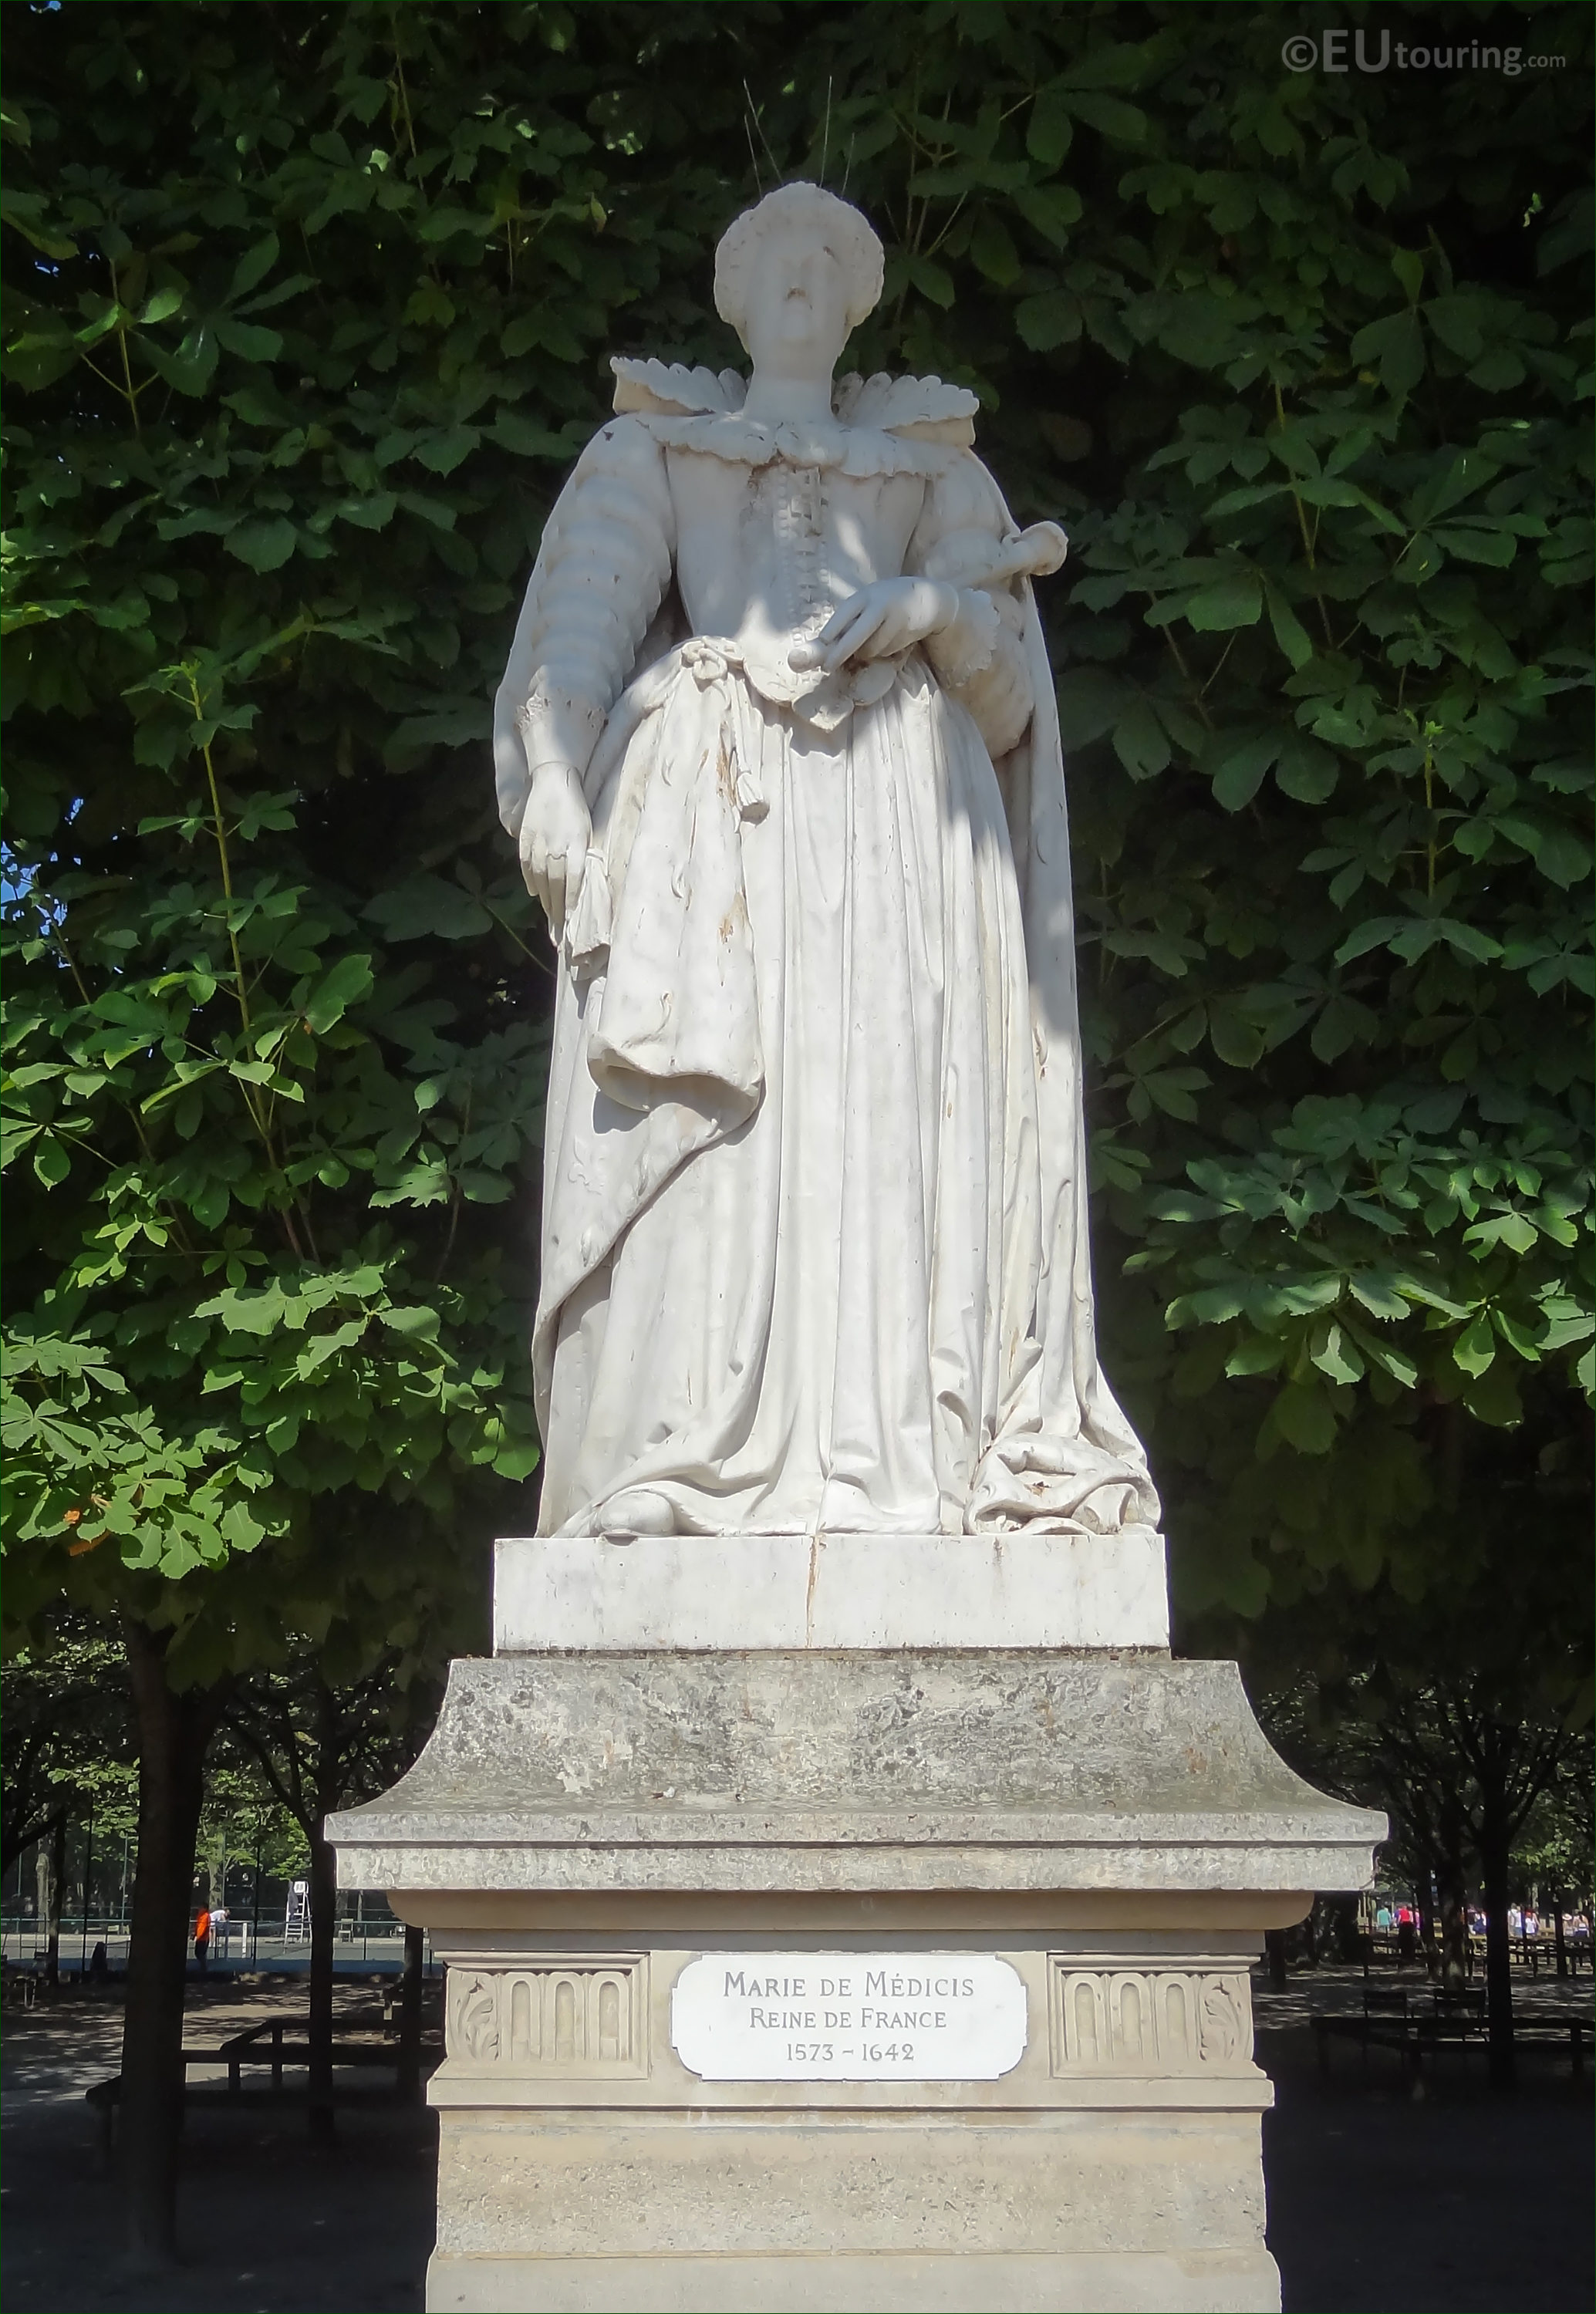 Photos of Marie de Medicis statue in Jardin du Luxembourg - Page 463